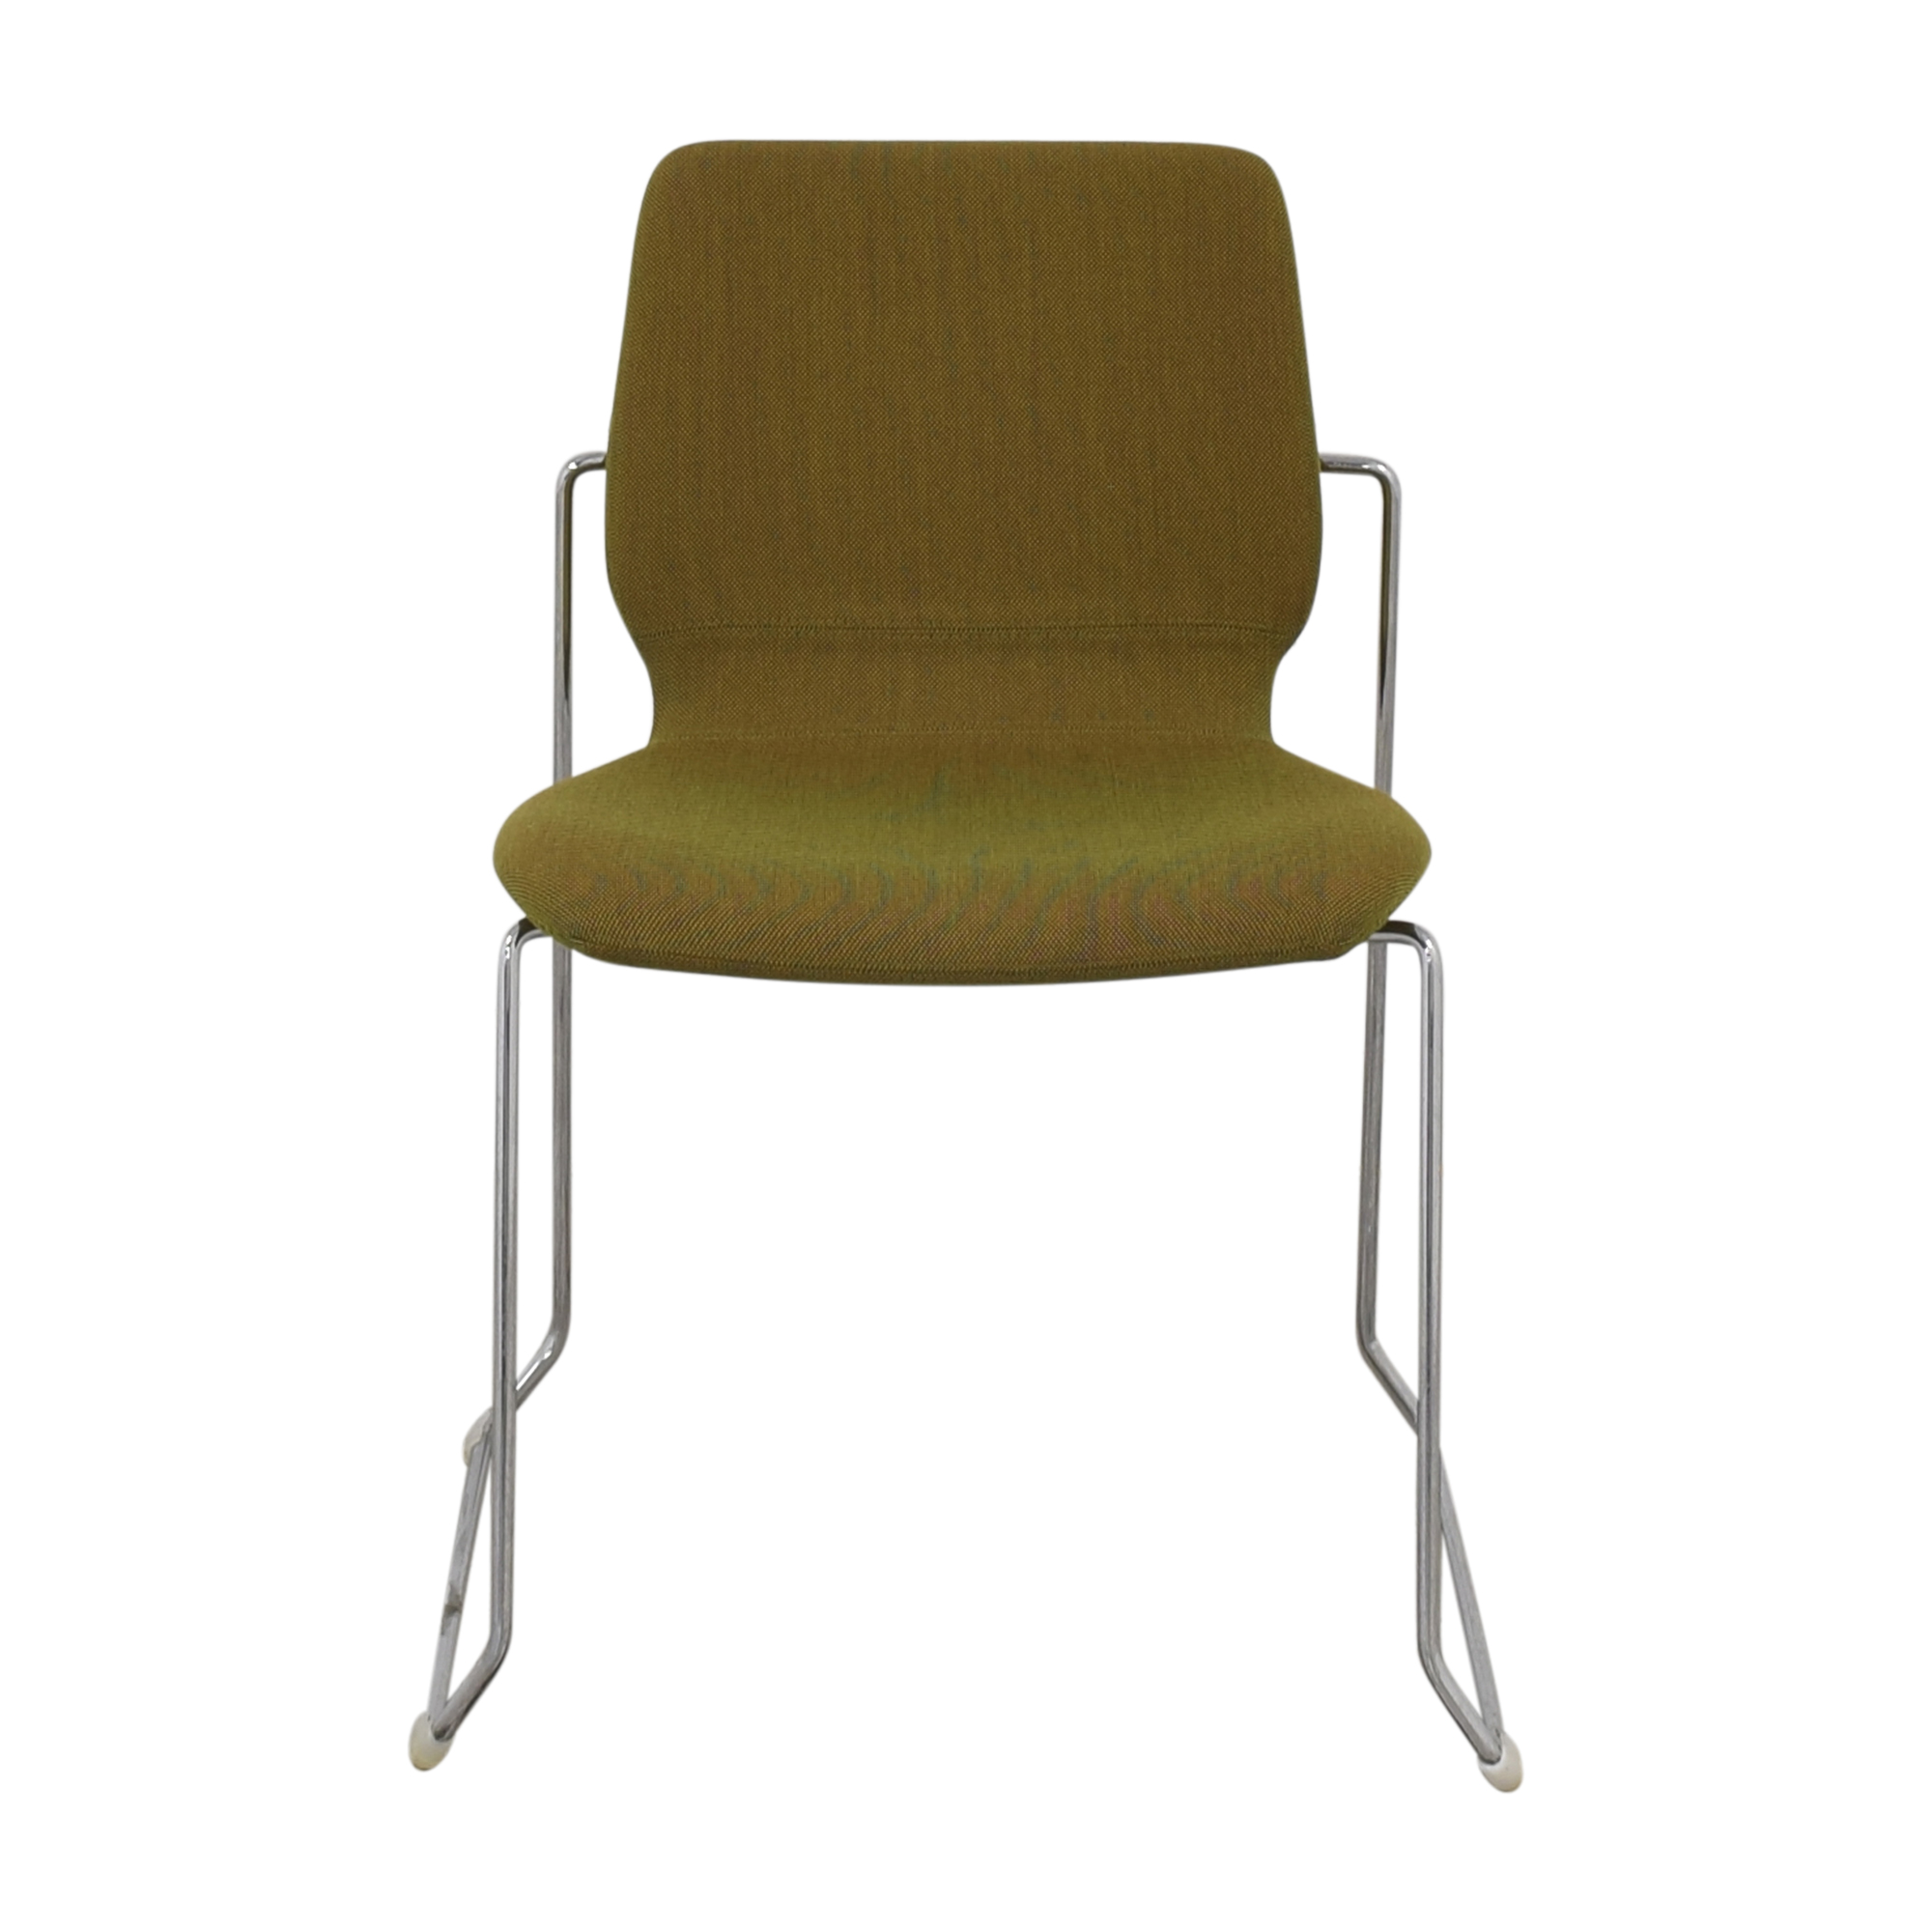 Koleksiyon Asanda Armless Chair / Chairs